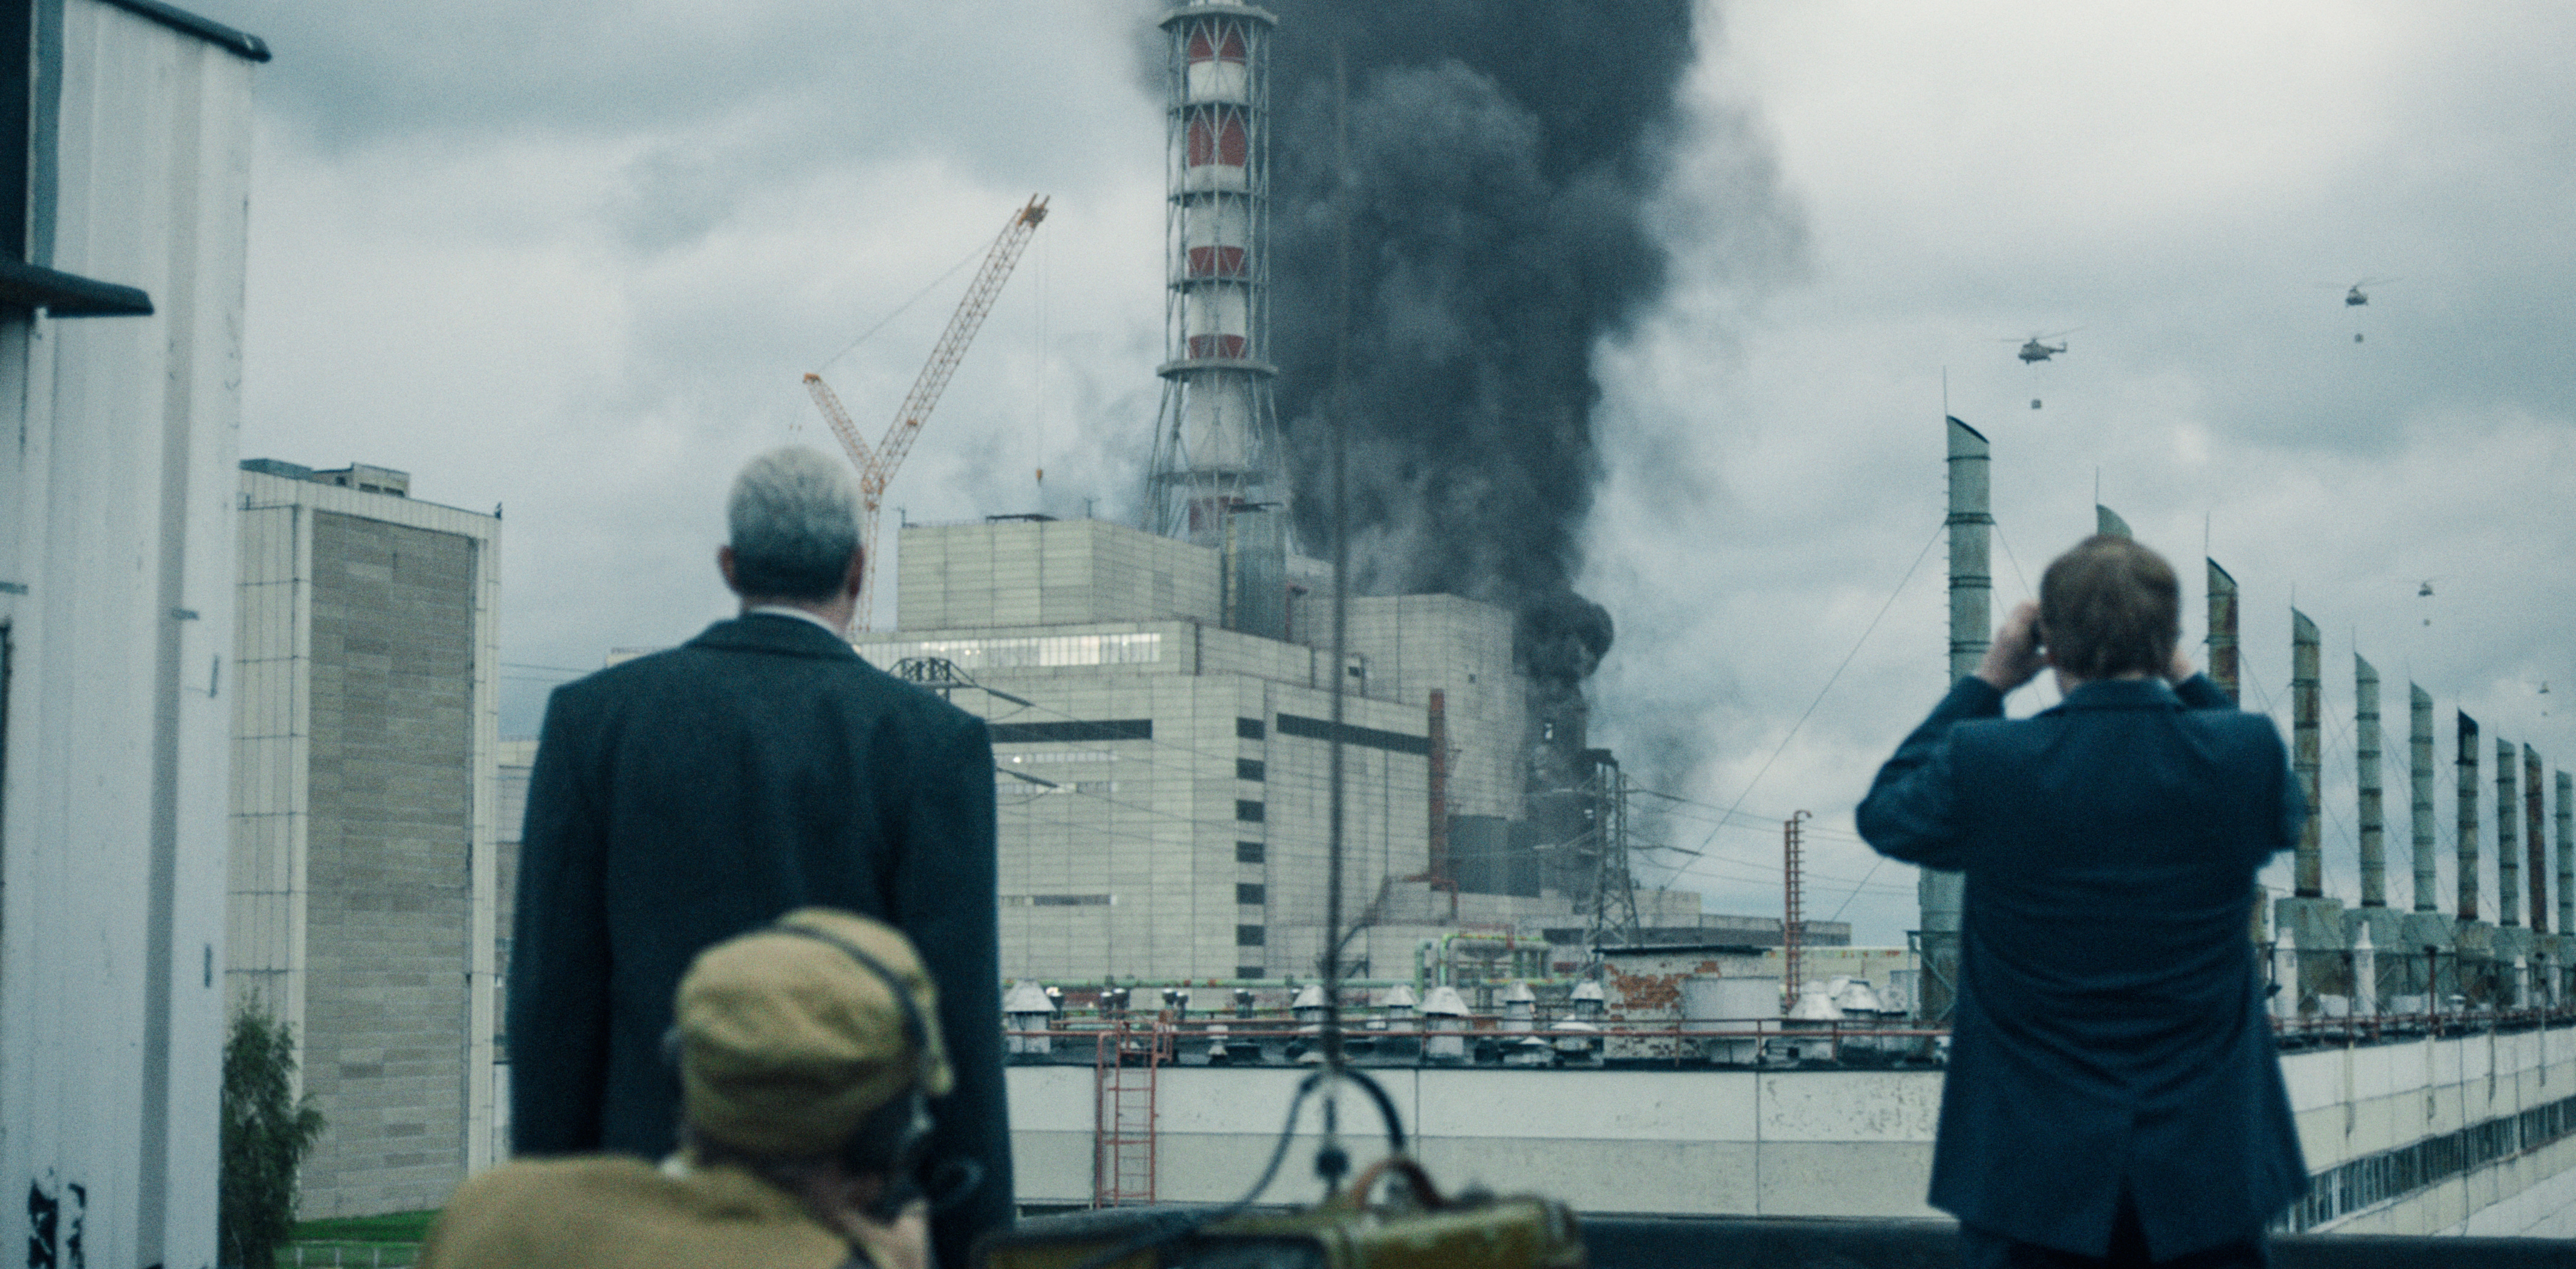 Military helicopters fly over the burning reactor in HBO's chilling Chernobyl. (HBO)